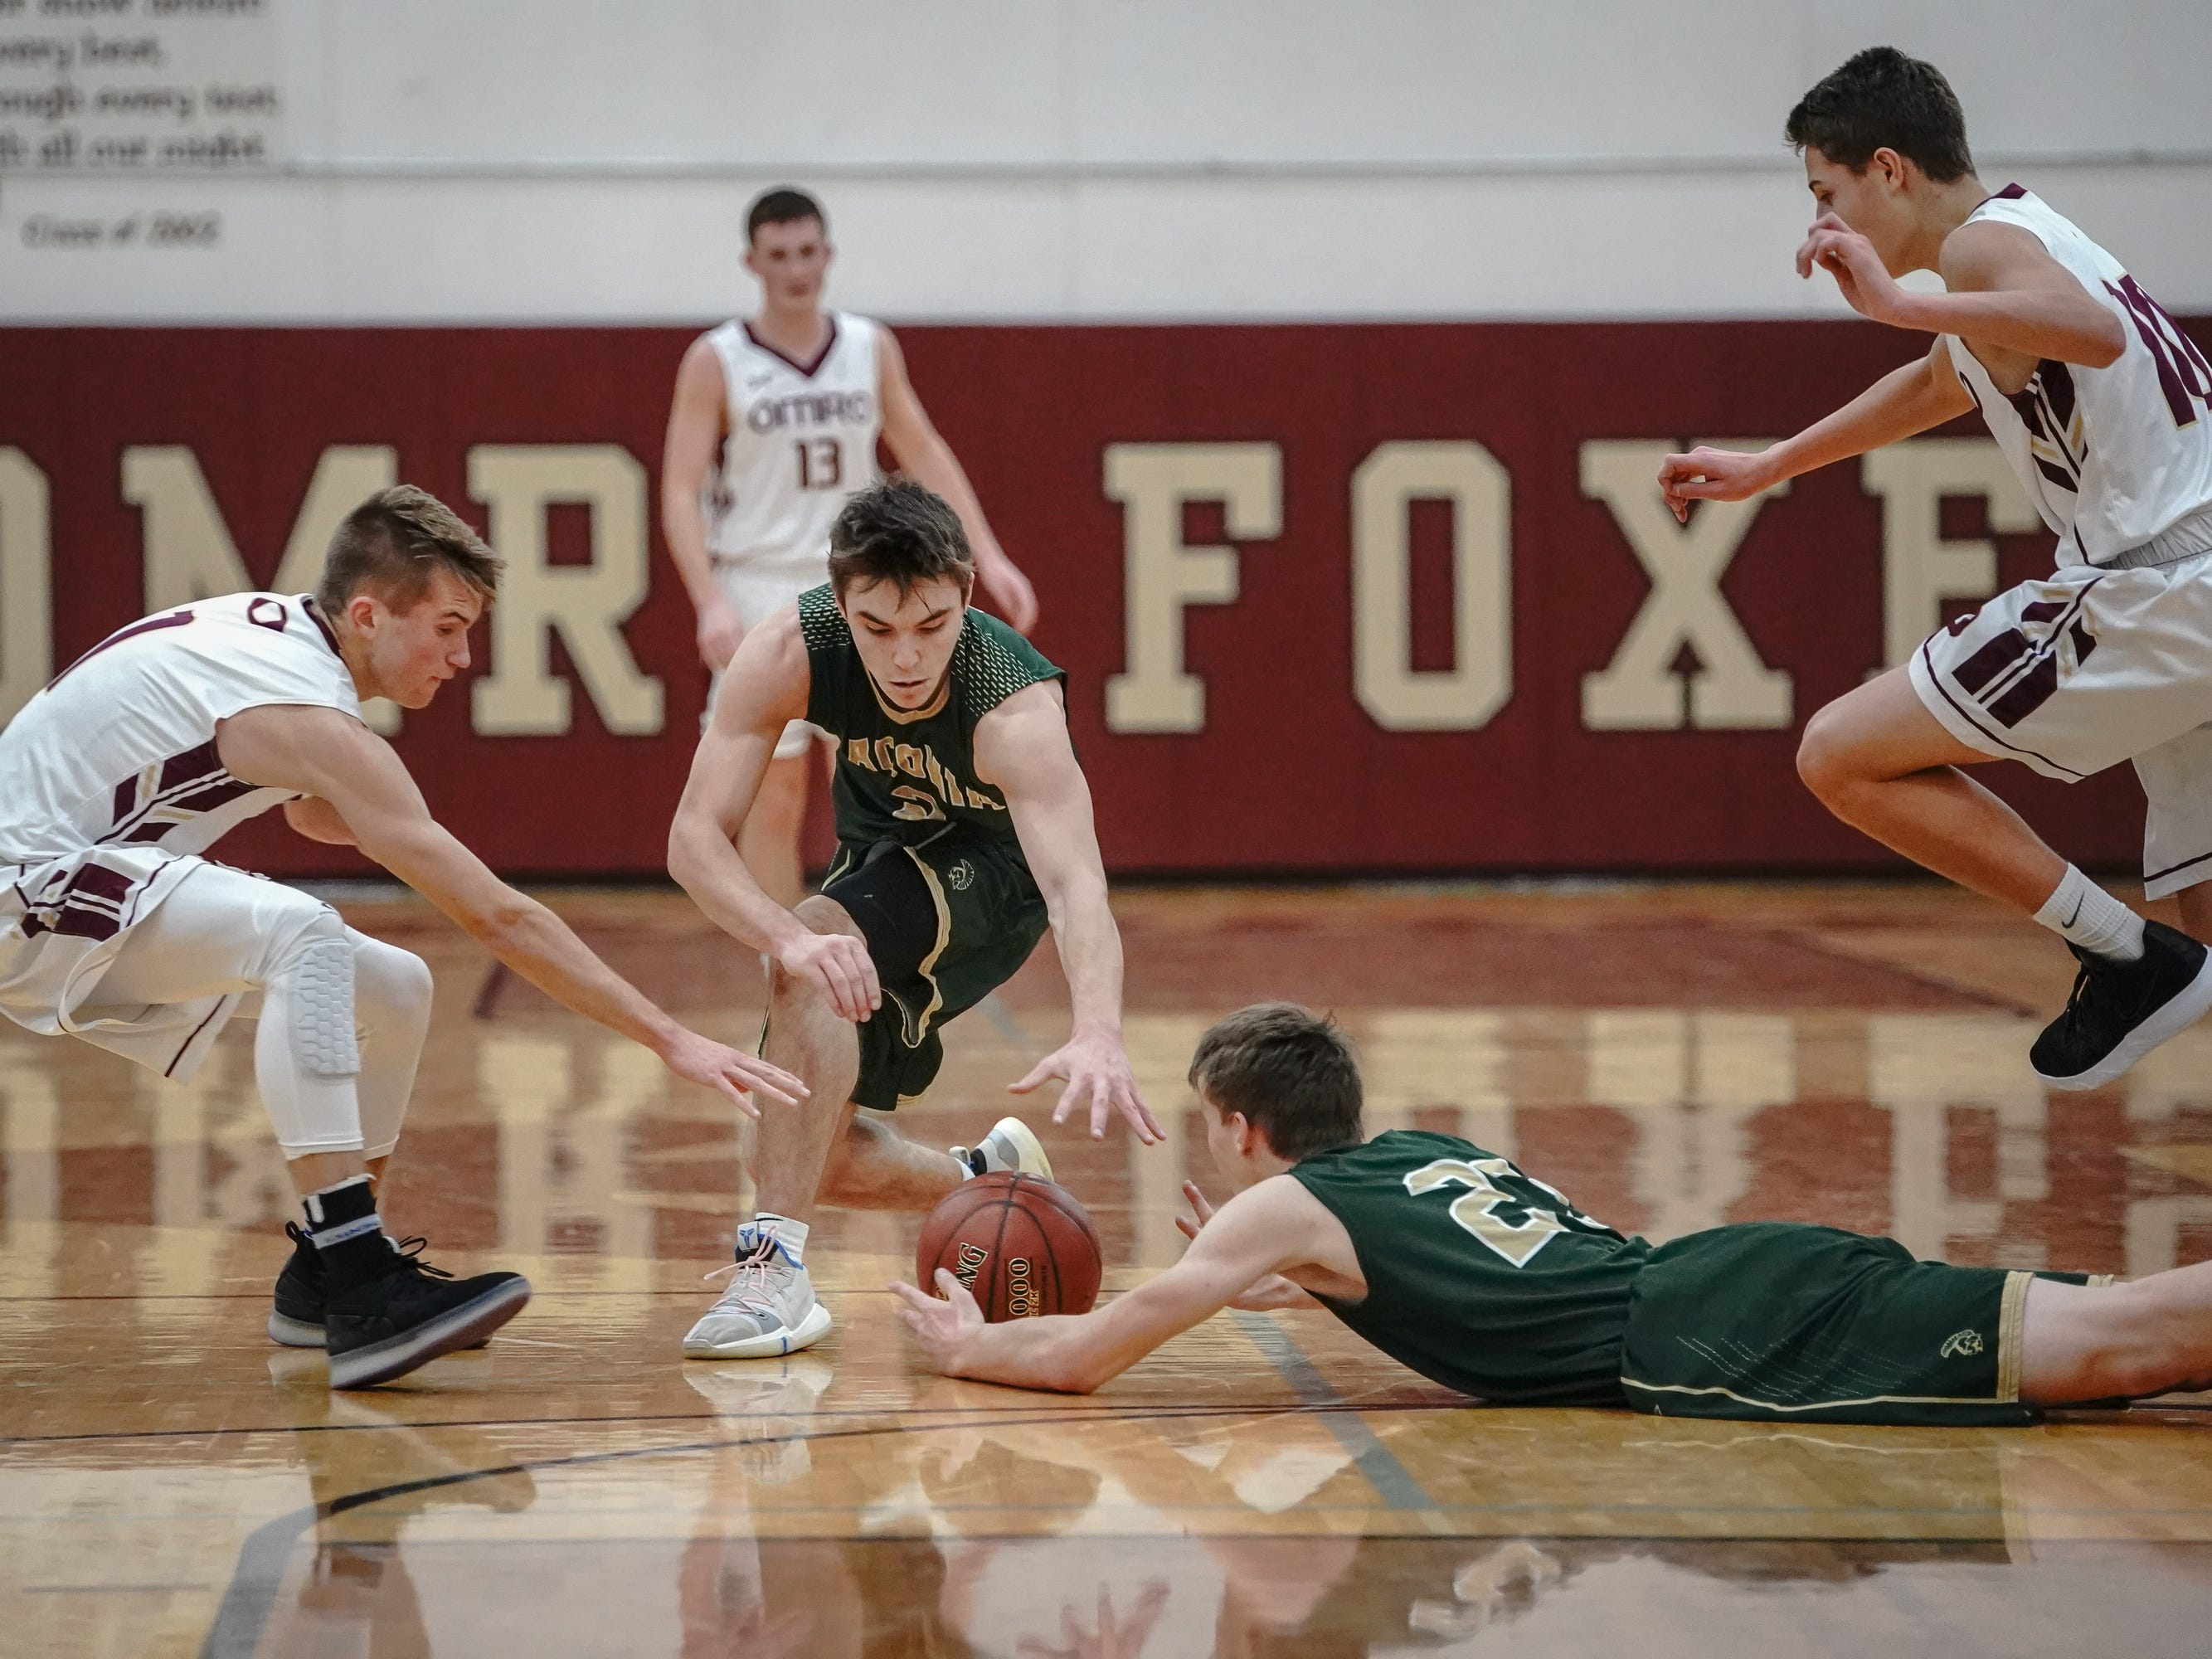 Dawson Drews (23) of Laconia scrambles for a loose ball. The Omro Foxes hosted the Laconia Spartans in a Flyway Conference basketball game Friday evening, January 11, 2019.